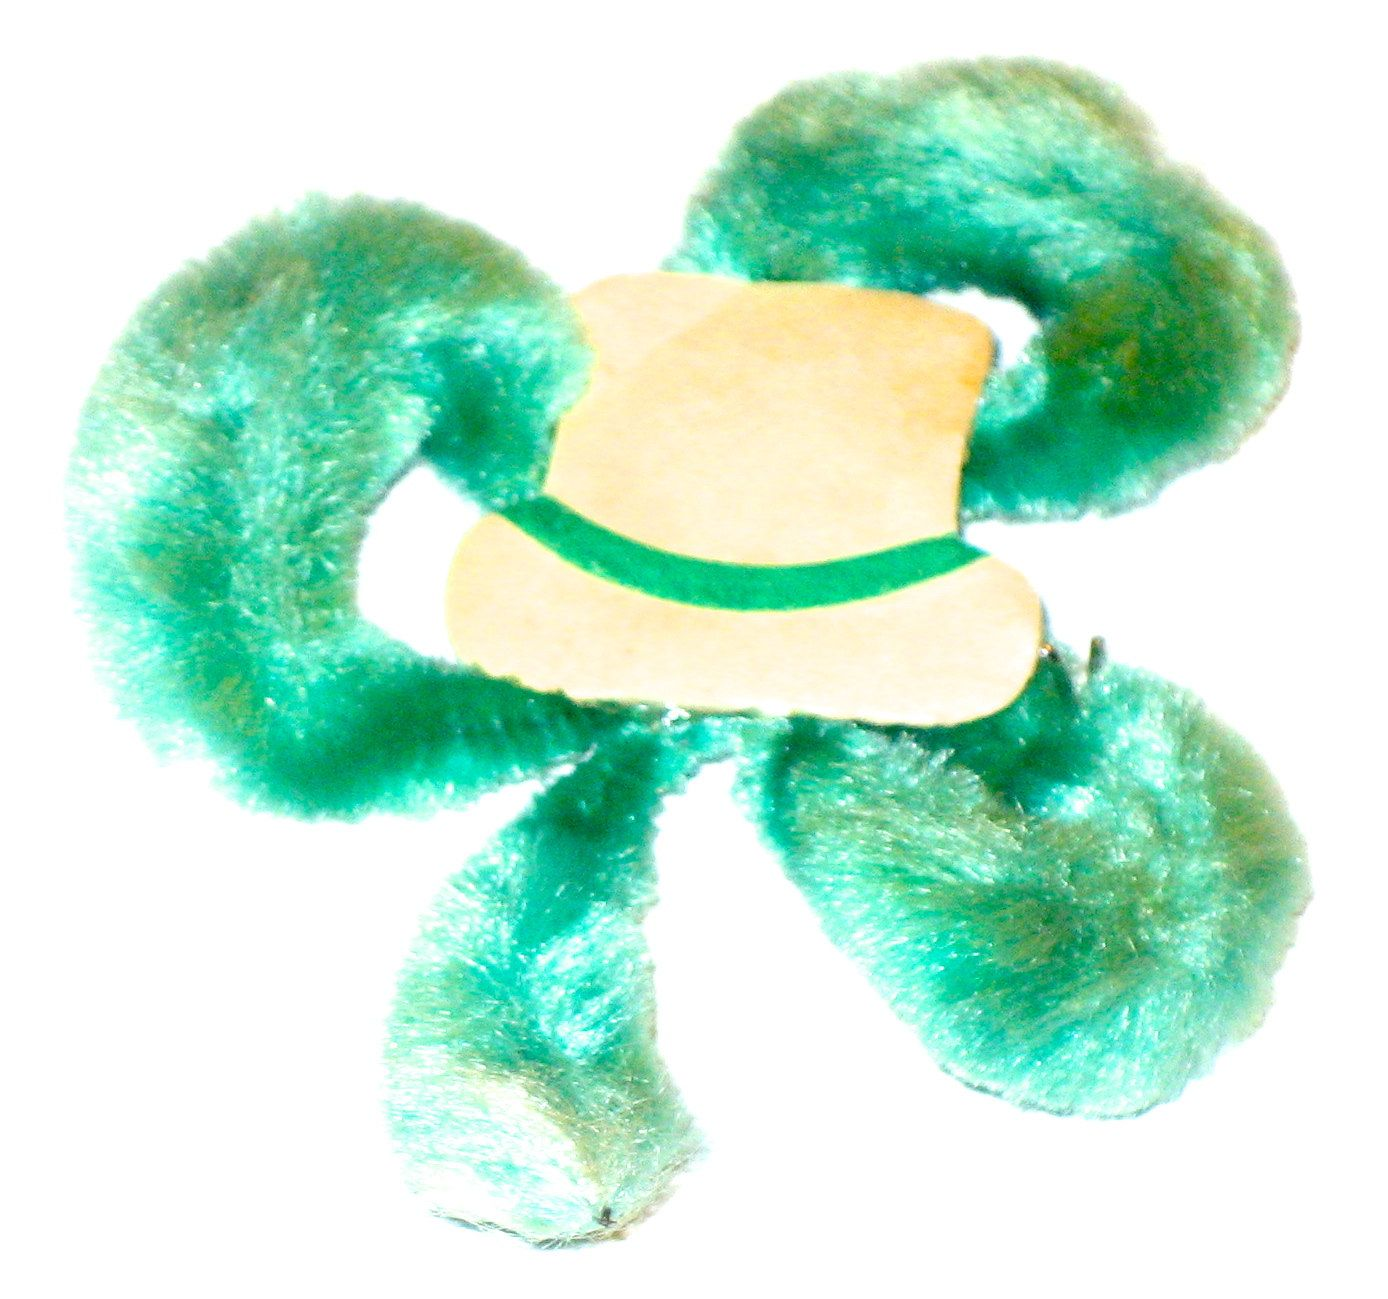 Vintage chenille clover pin St Patrick's Day brooch with paper hat novelty jewelry by sweetalicelovesyou on Etsy